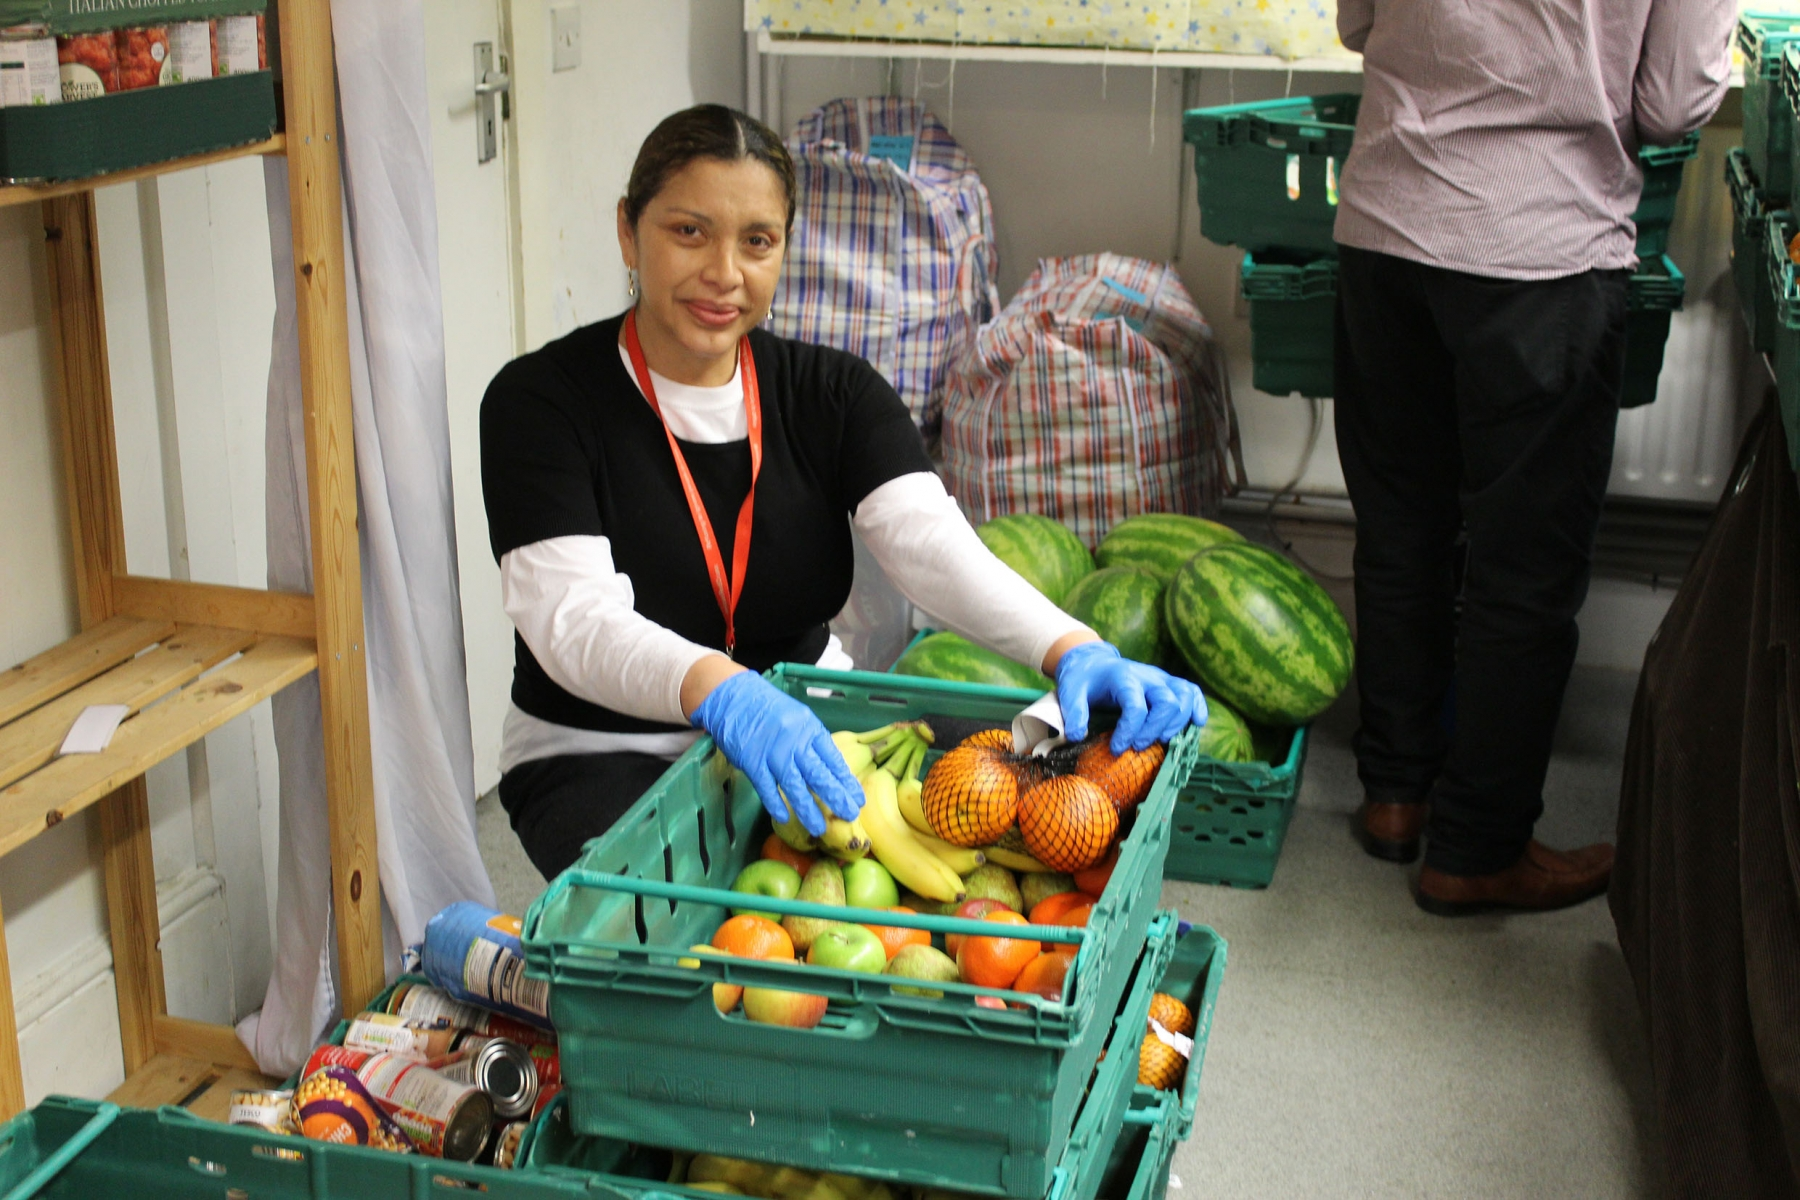 FareShare Midlands Backs National Campaign to End Scandal of Unsold Food Being Wasted